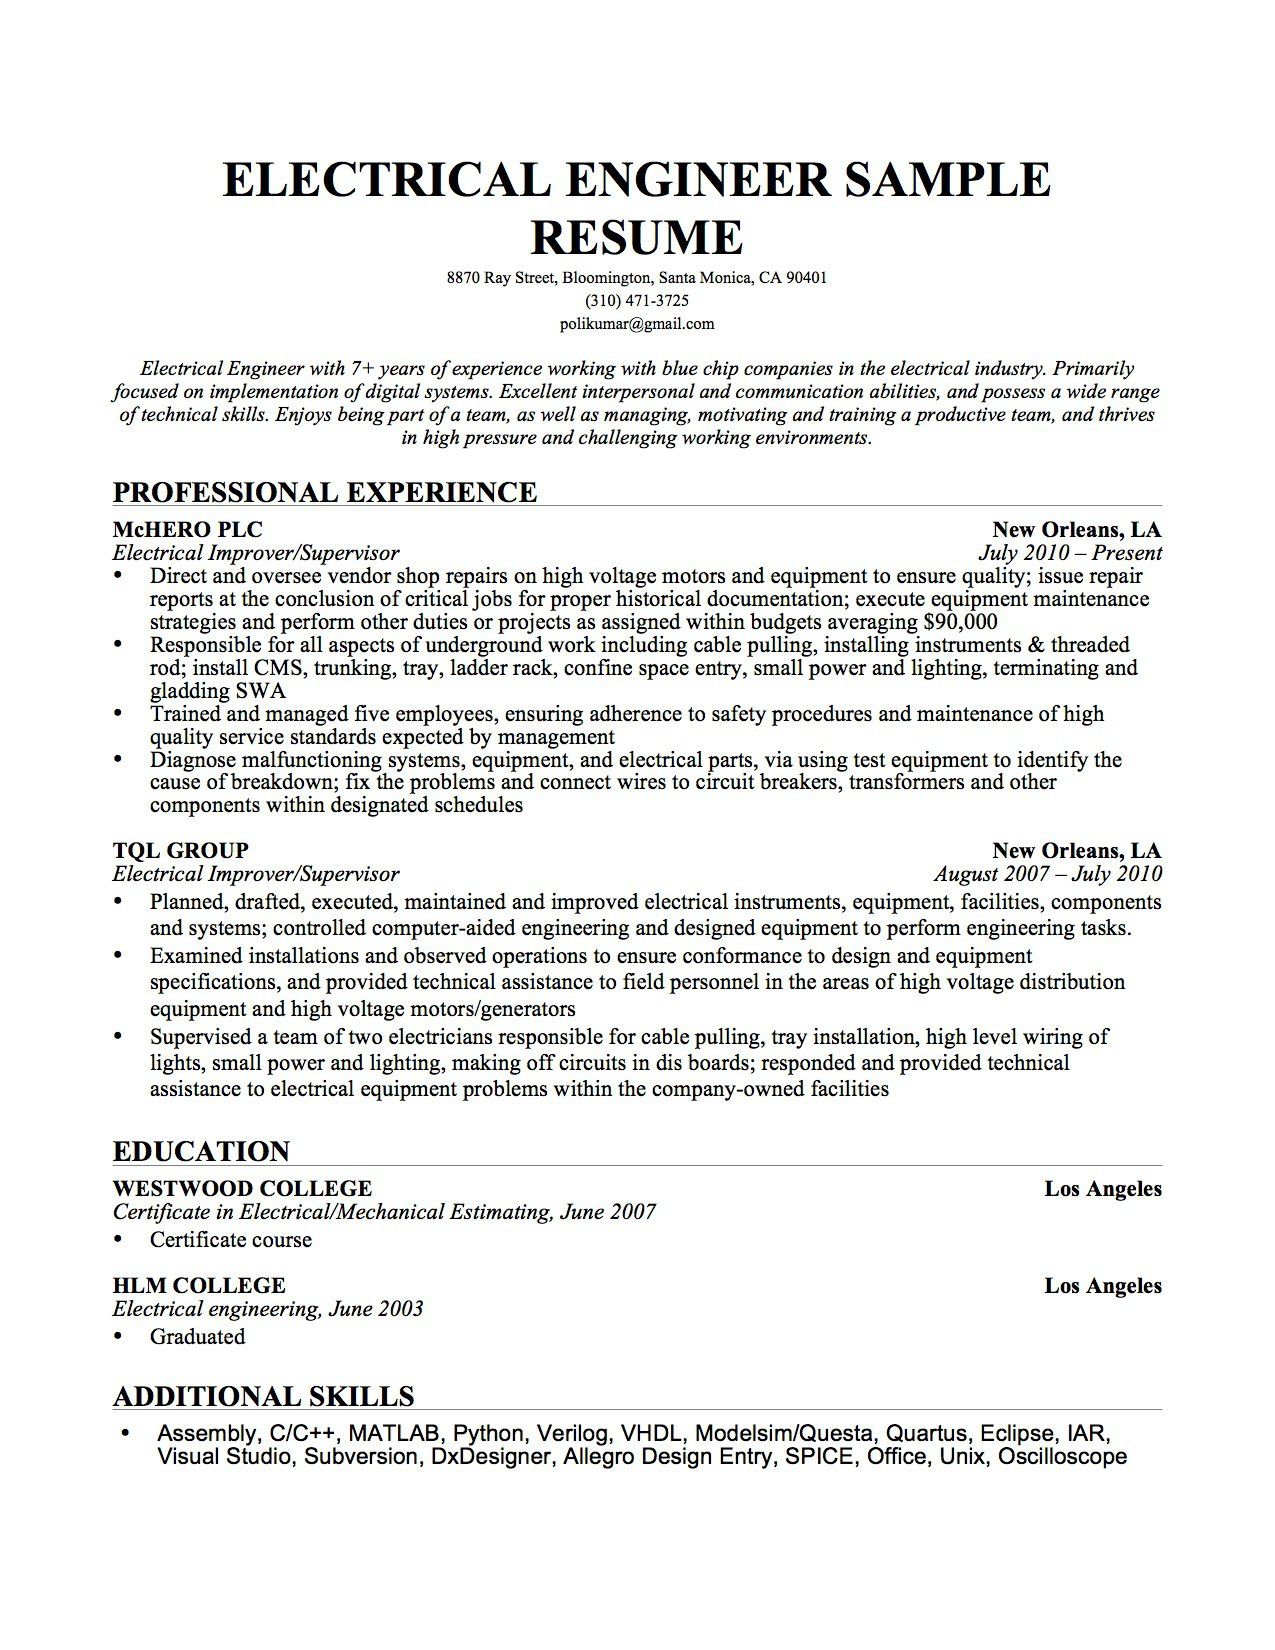 [Computer Hardware Engineer Sample Resume Weld Inspector Cover Letter  Engineering Power Plant Electrical Resumeample Jobs] Warning: Invalid  Argument ...  Electrician Resume Templates